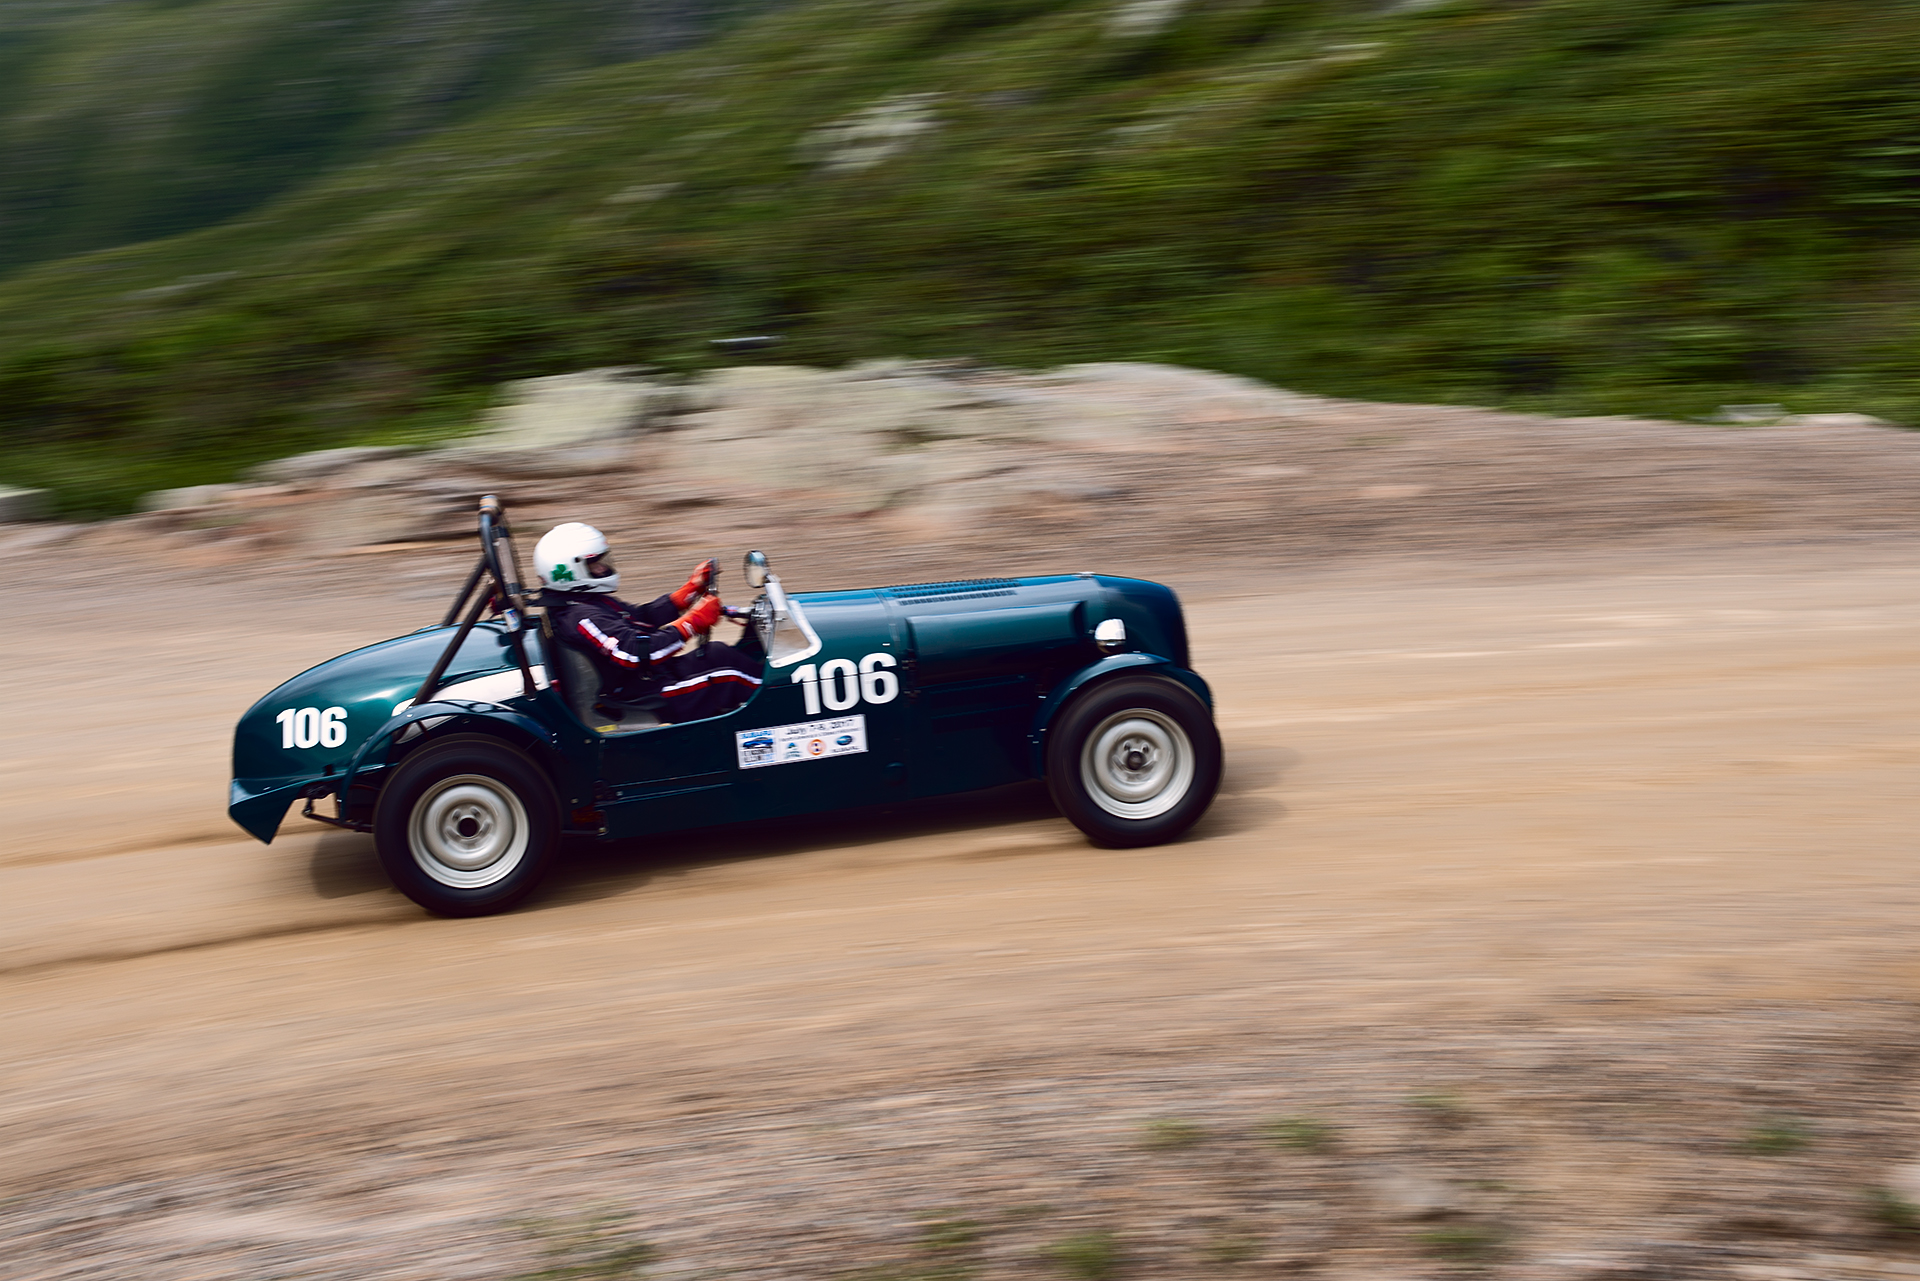 Car 106 at Climb to the Clouds 2017